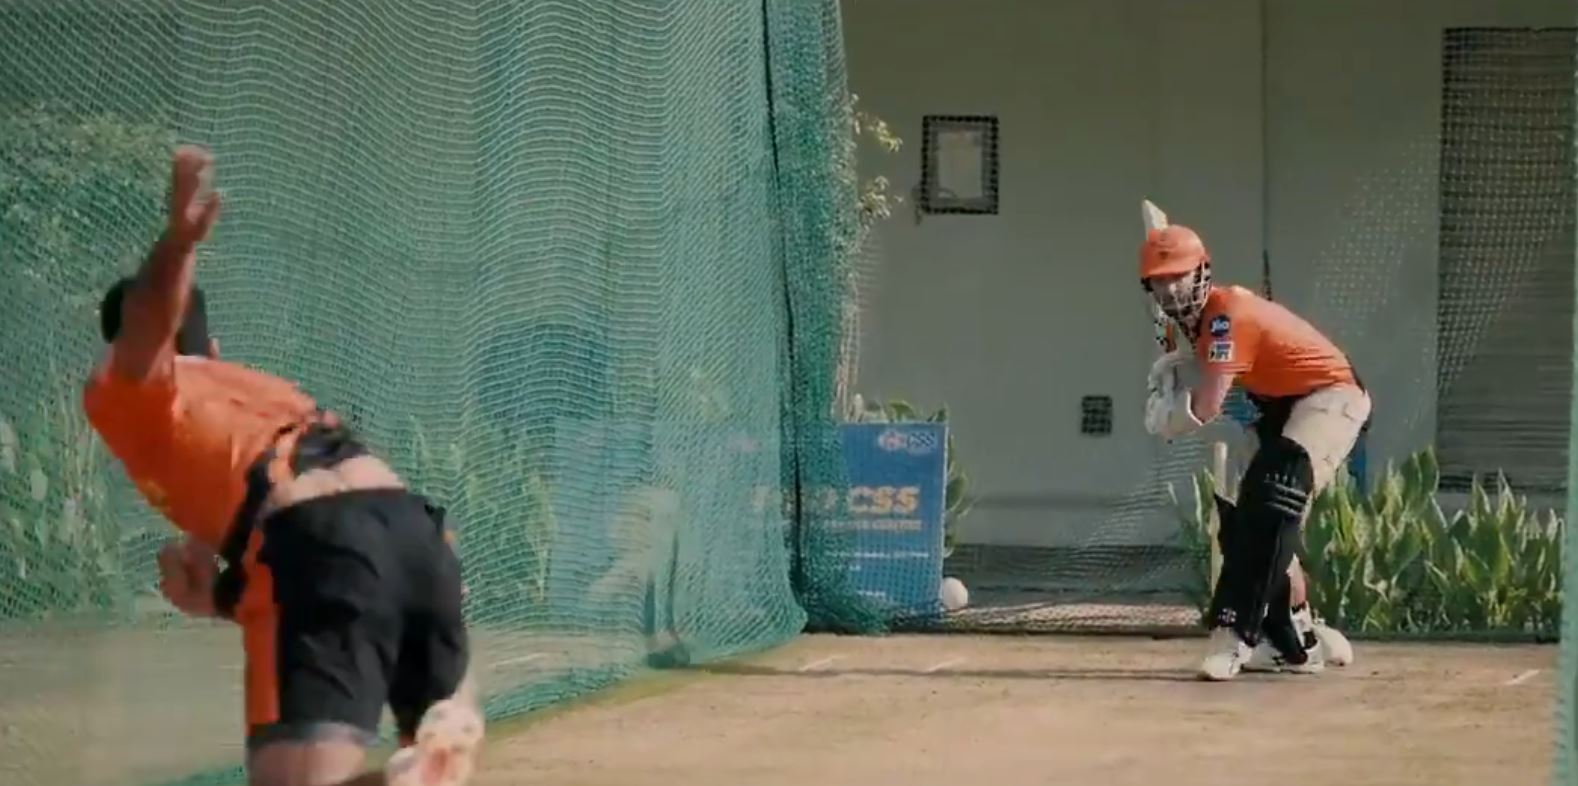 Kane Williamson talked about his recovery from injury   SRH Twitter